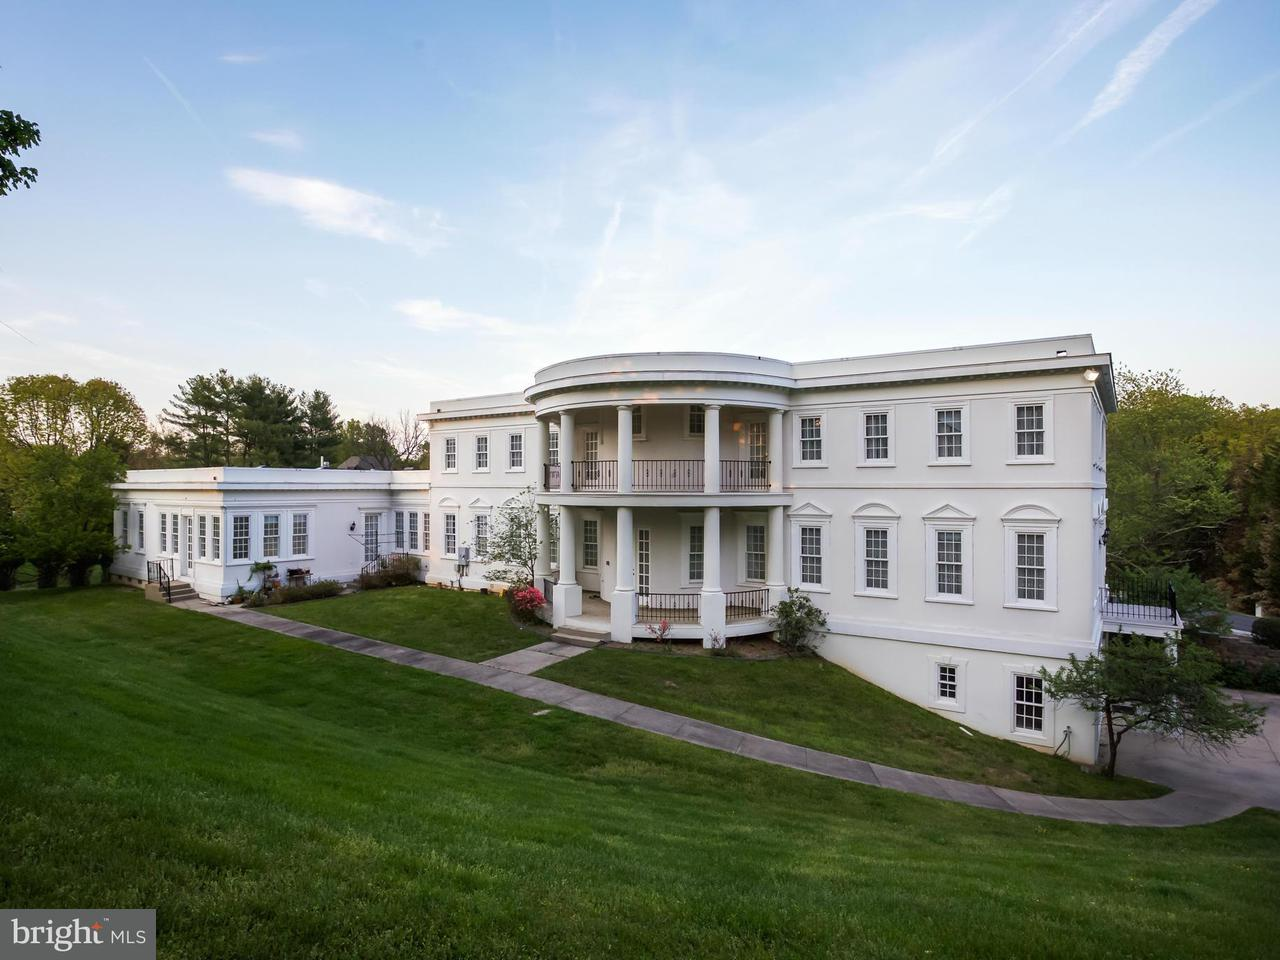 Single Family Home for Sale at 1111 Towlston Road 1111 Towlston Road McLean, Virginia 22102 United States